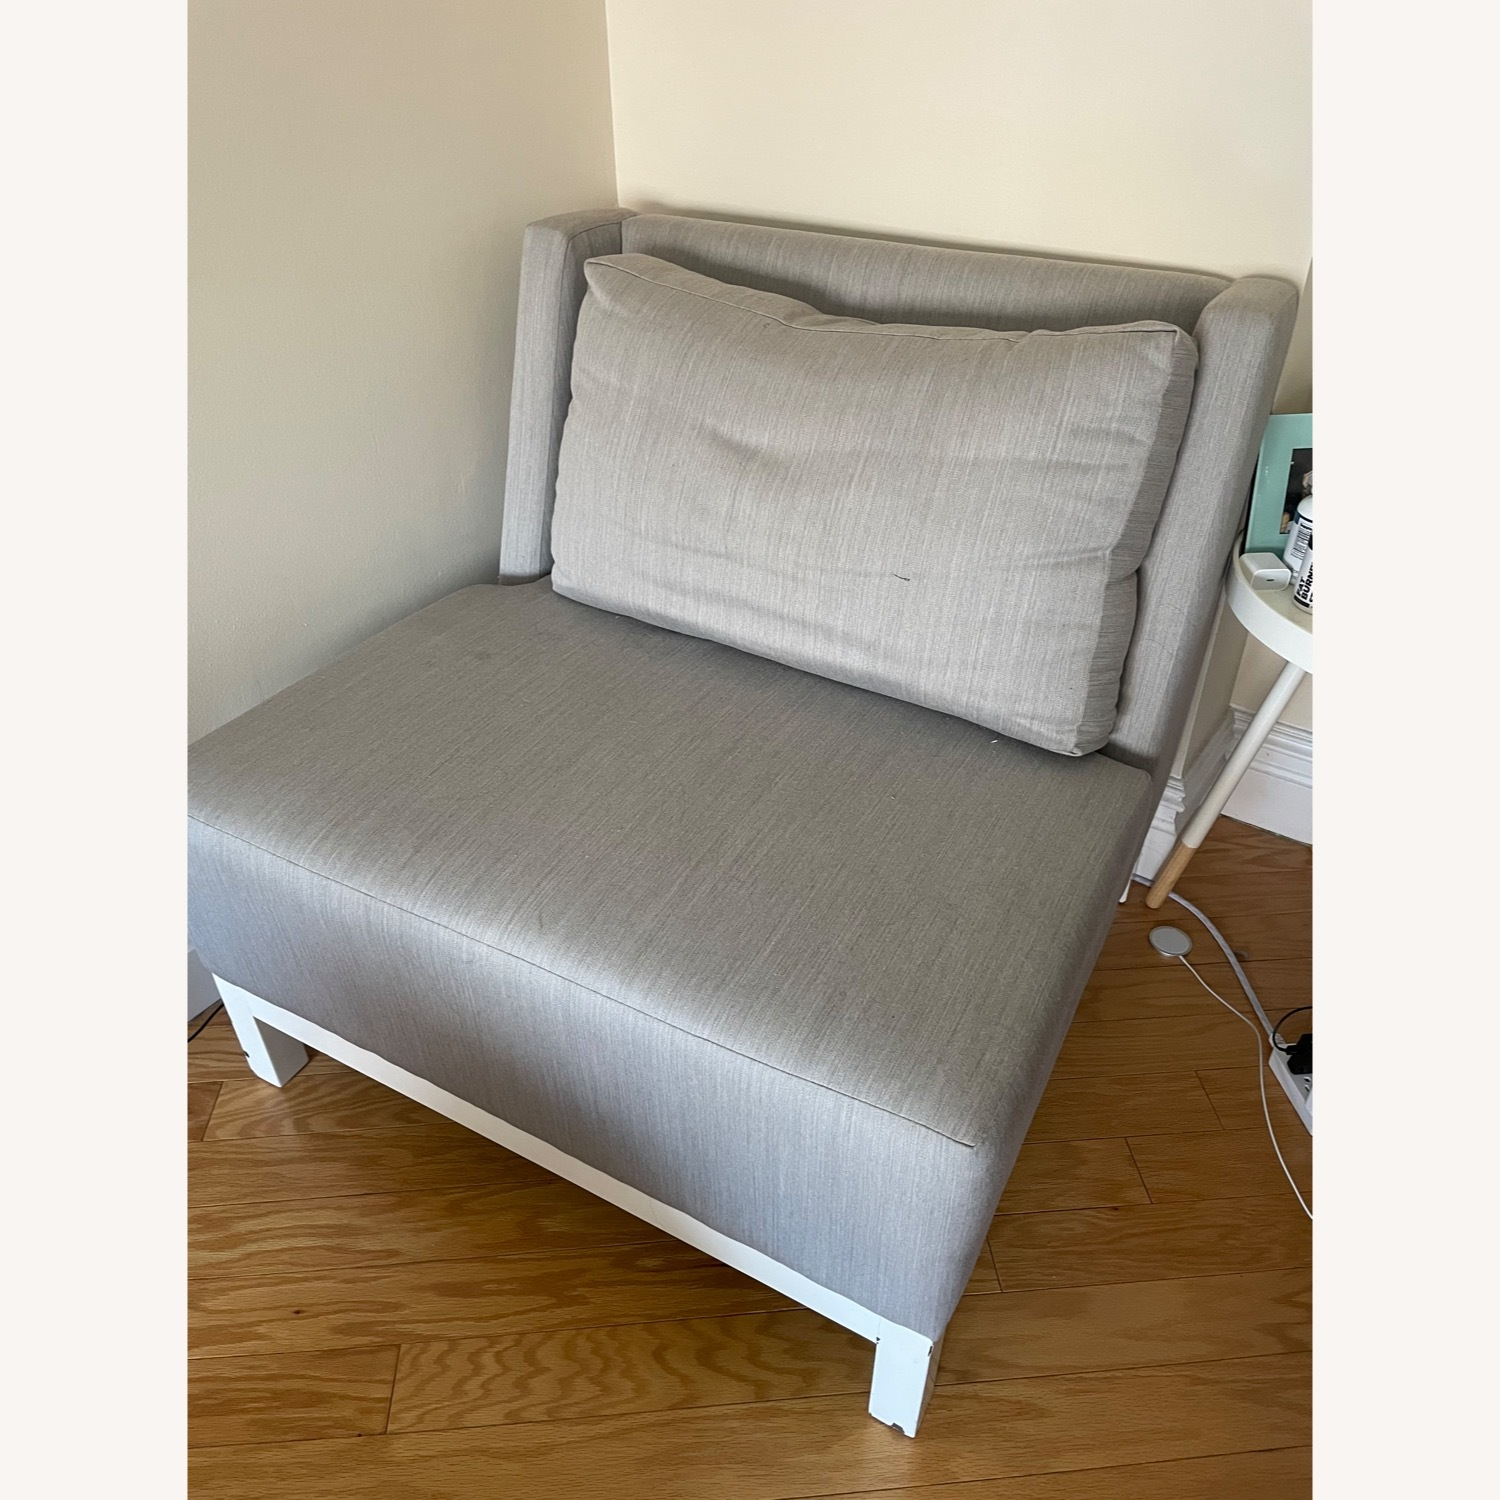 Silver/Gray Accent Chair - image-1